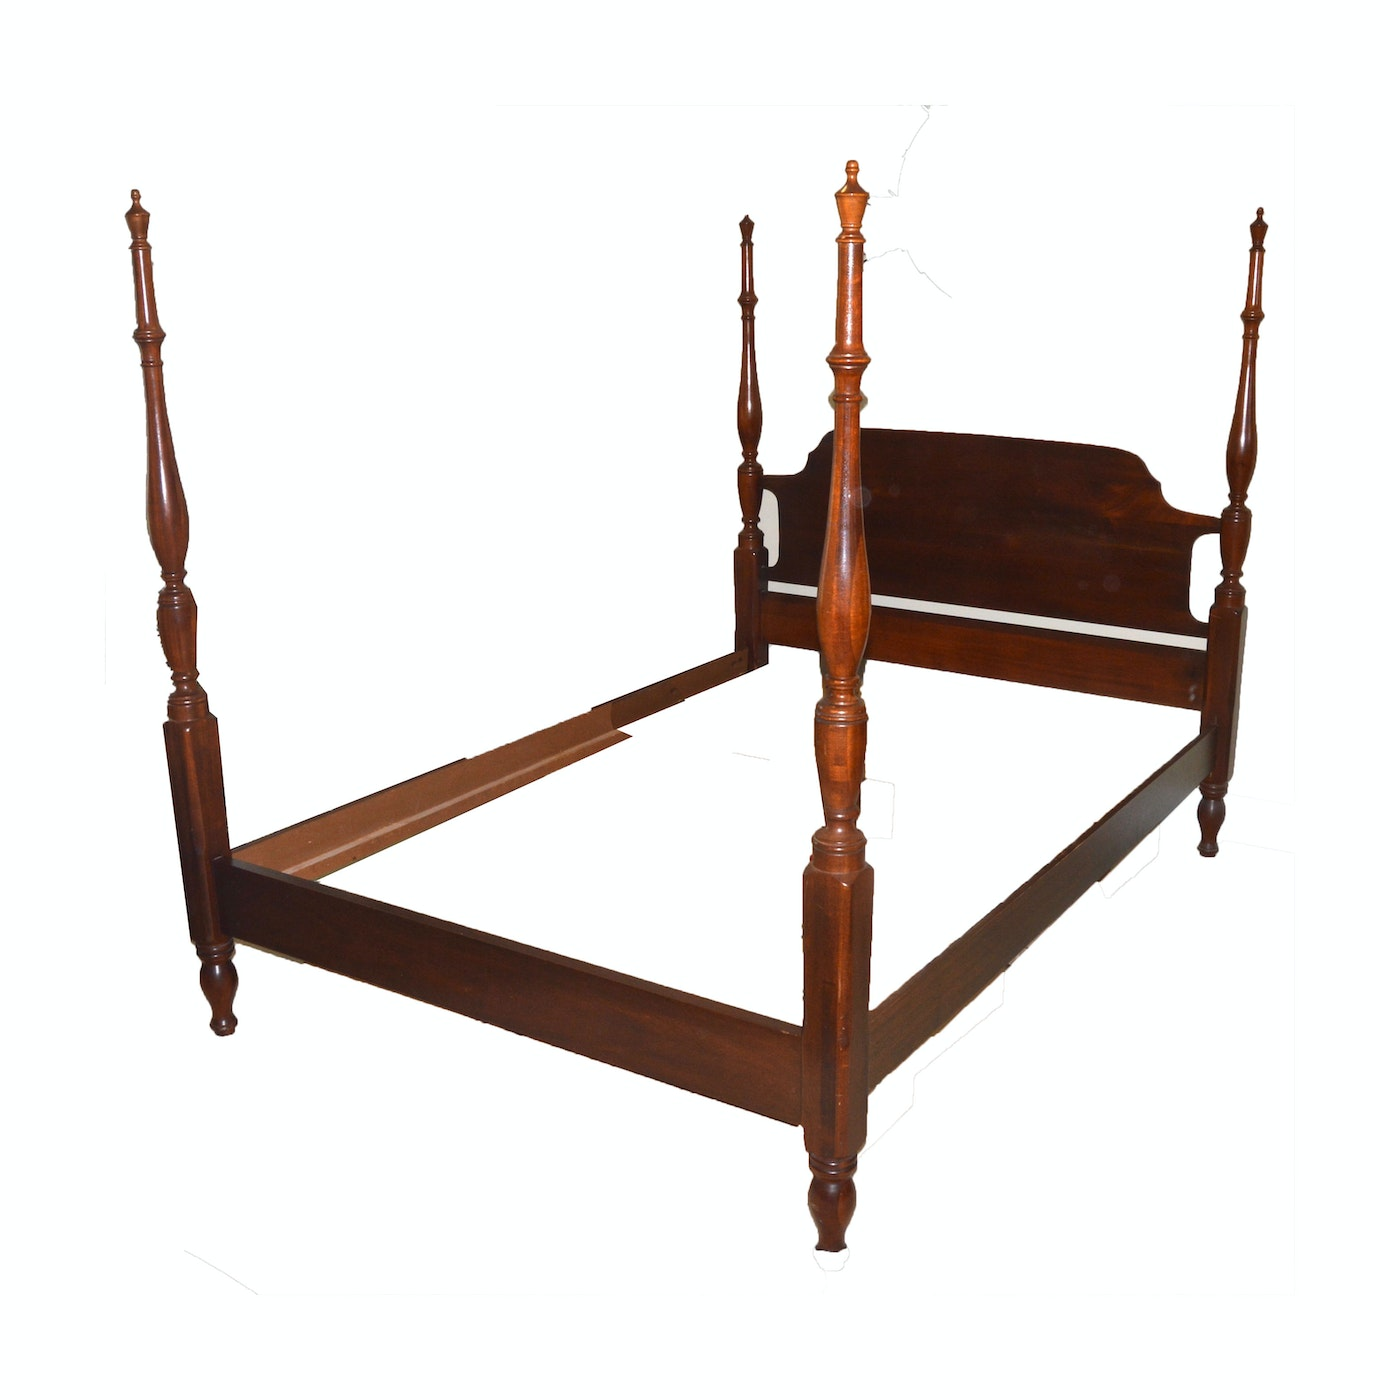 Four post full size bed frame by cresent furniture ebth for Full size bed frame and dresser